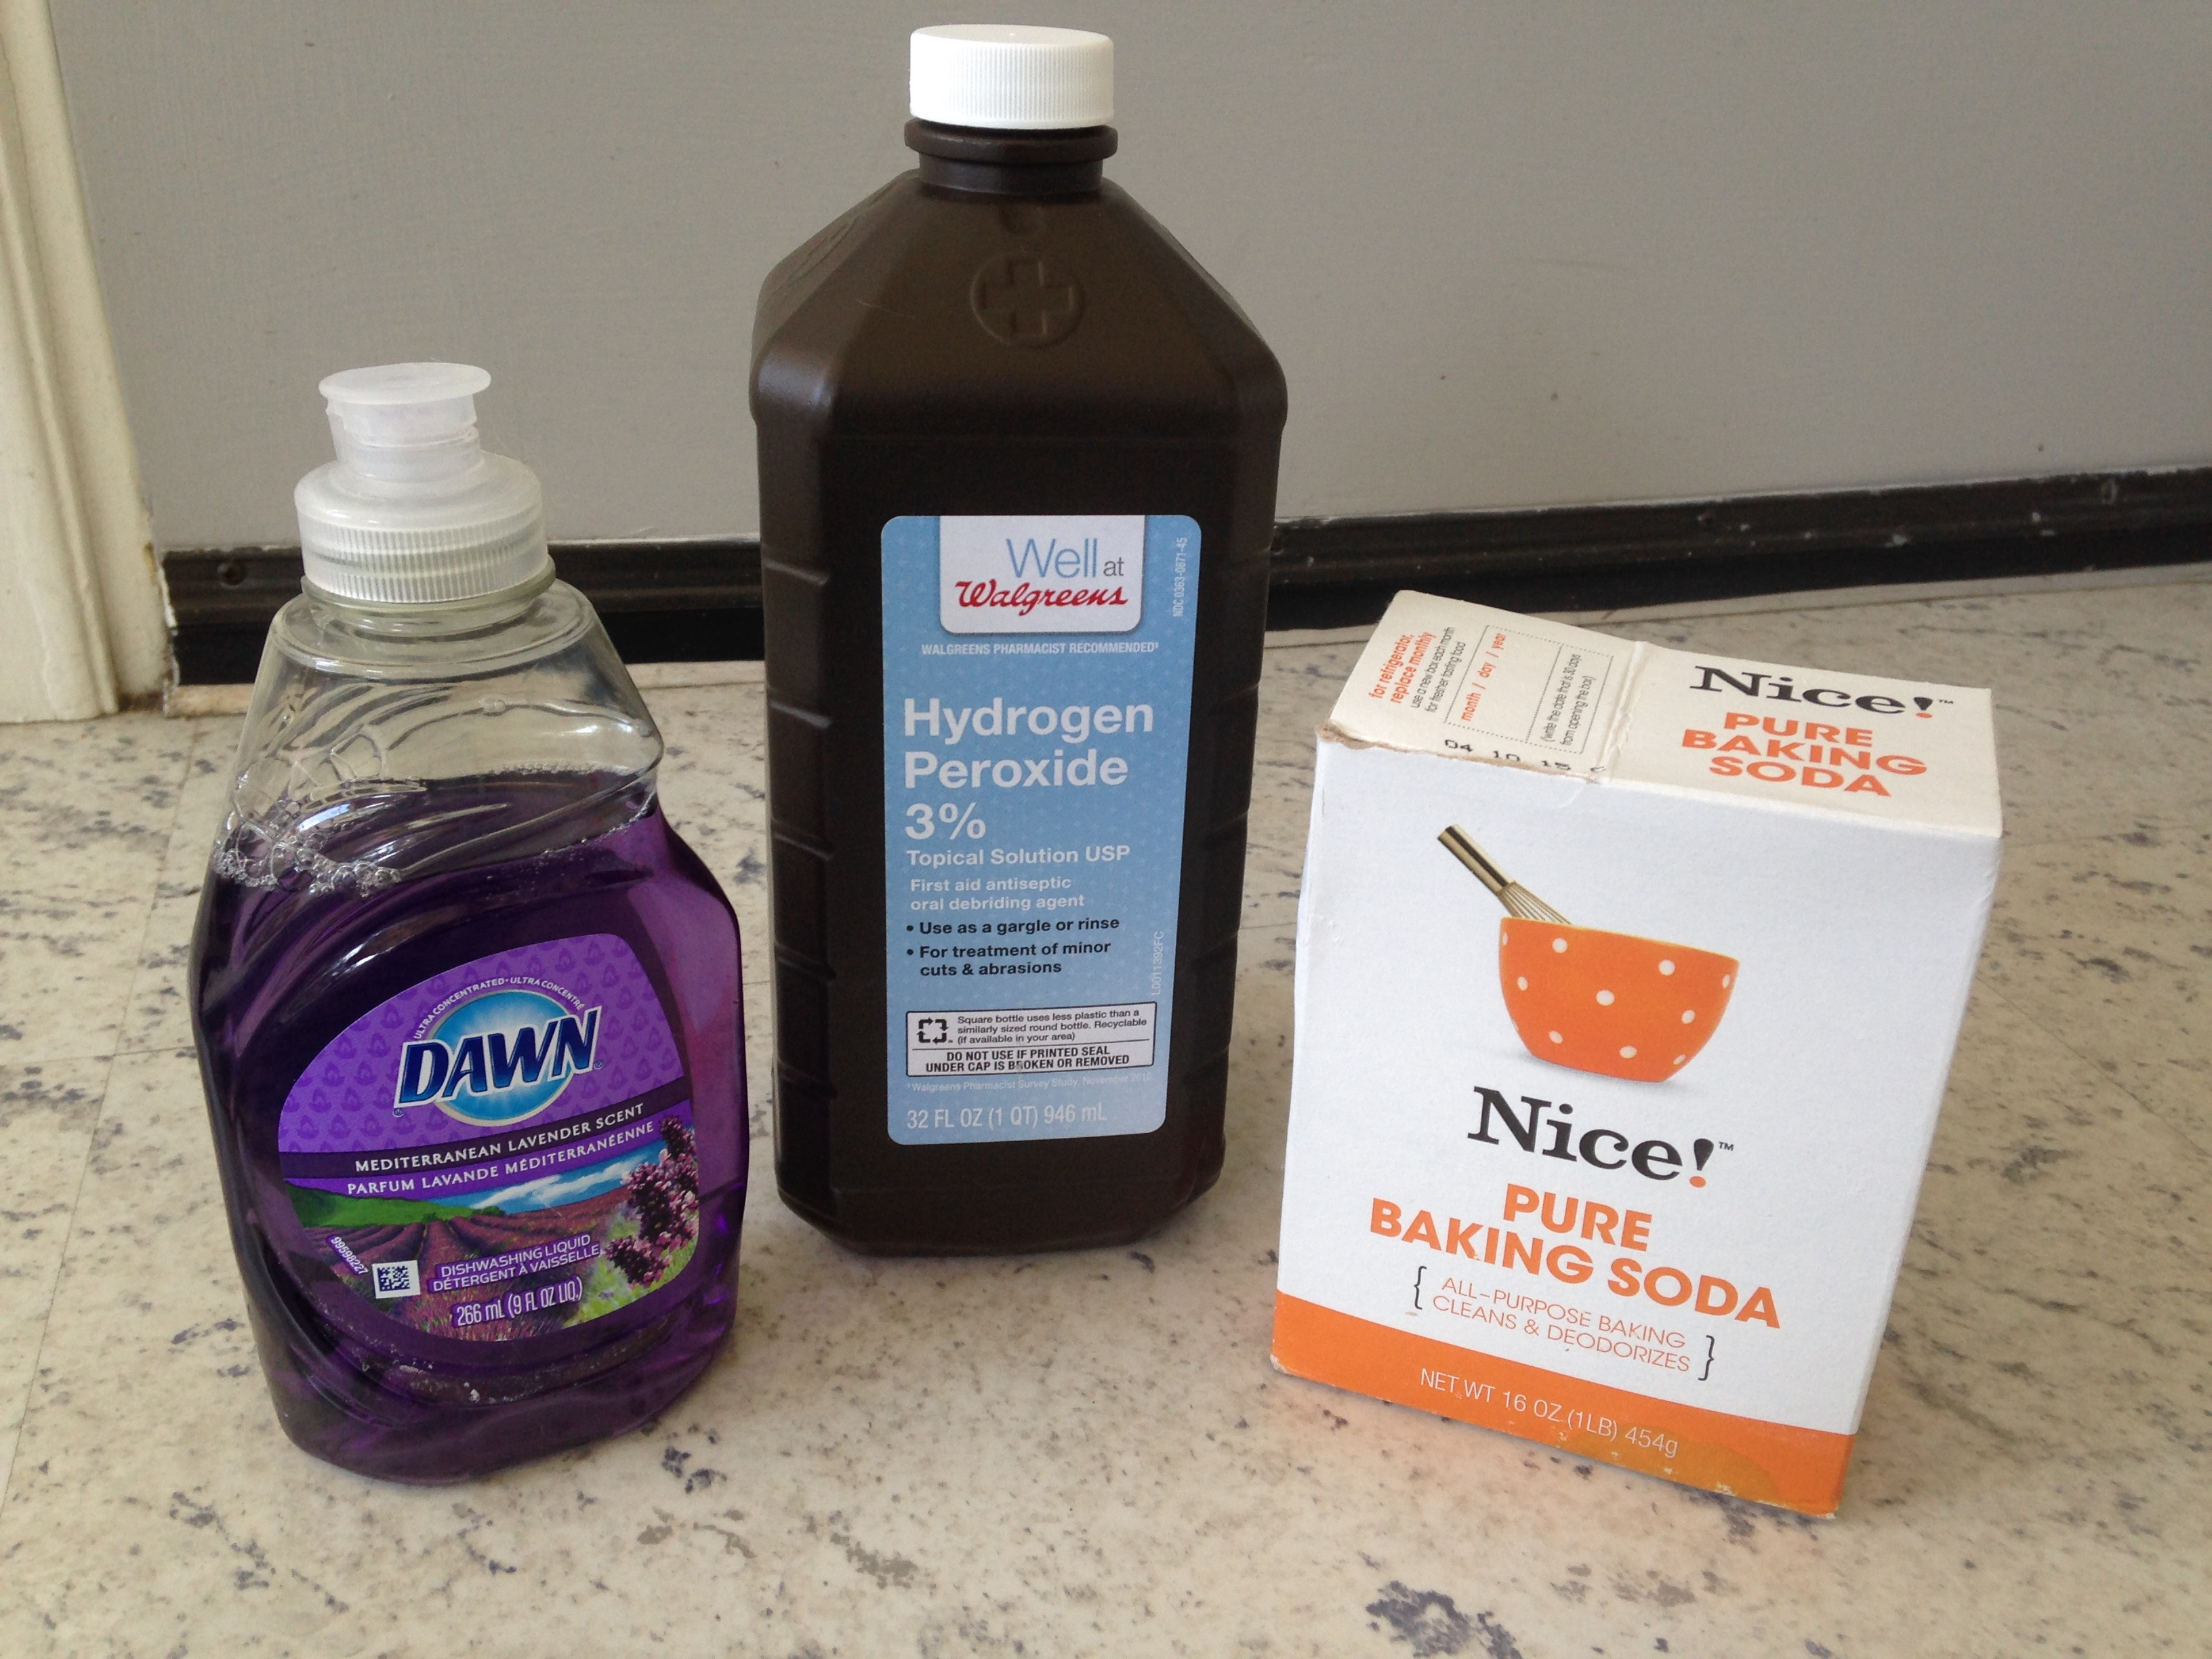 Getting skunk smell out of the house - The Three Ingredients You Need To Make A Skunk Wash But Be Careful These Ingredients Must Be Mixed In An Open Container Or They Could Explode